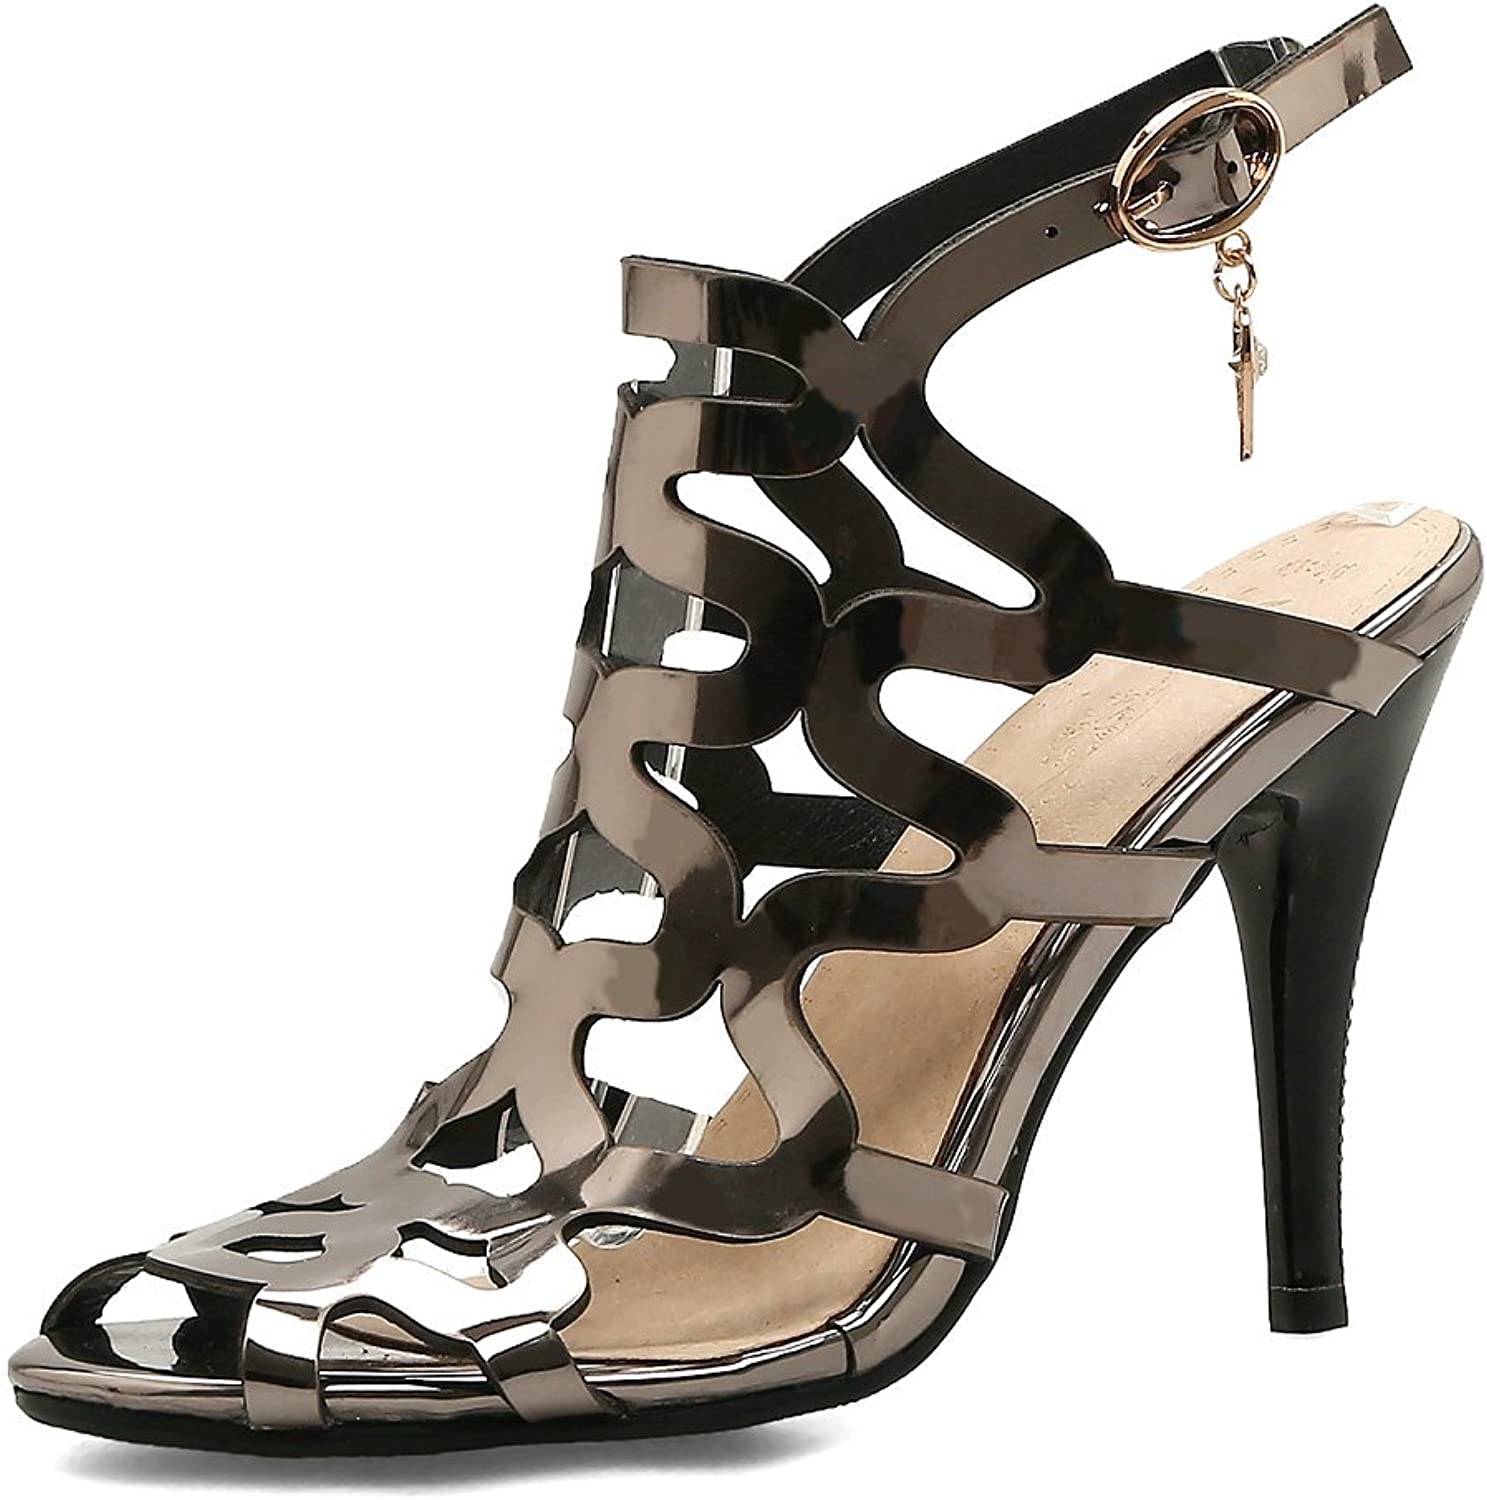 AnMengXinLing High Heel Gladiator Sandals for Women Leather Peep Toe Hollow Out Sexy Wedding Stilettos